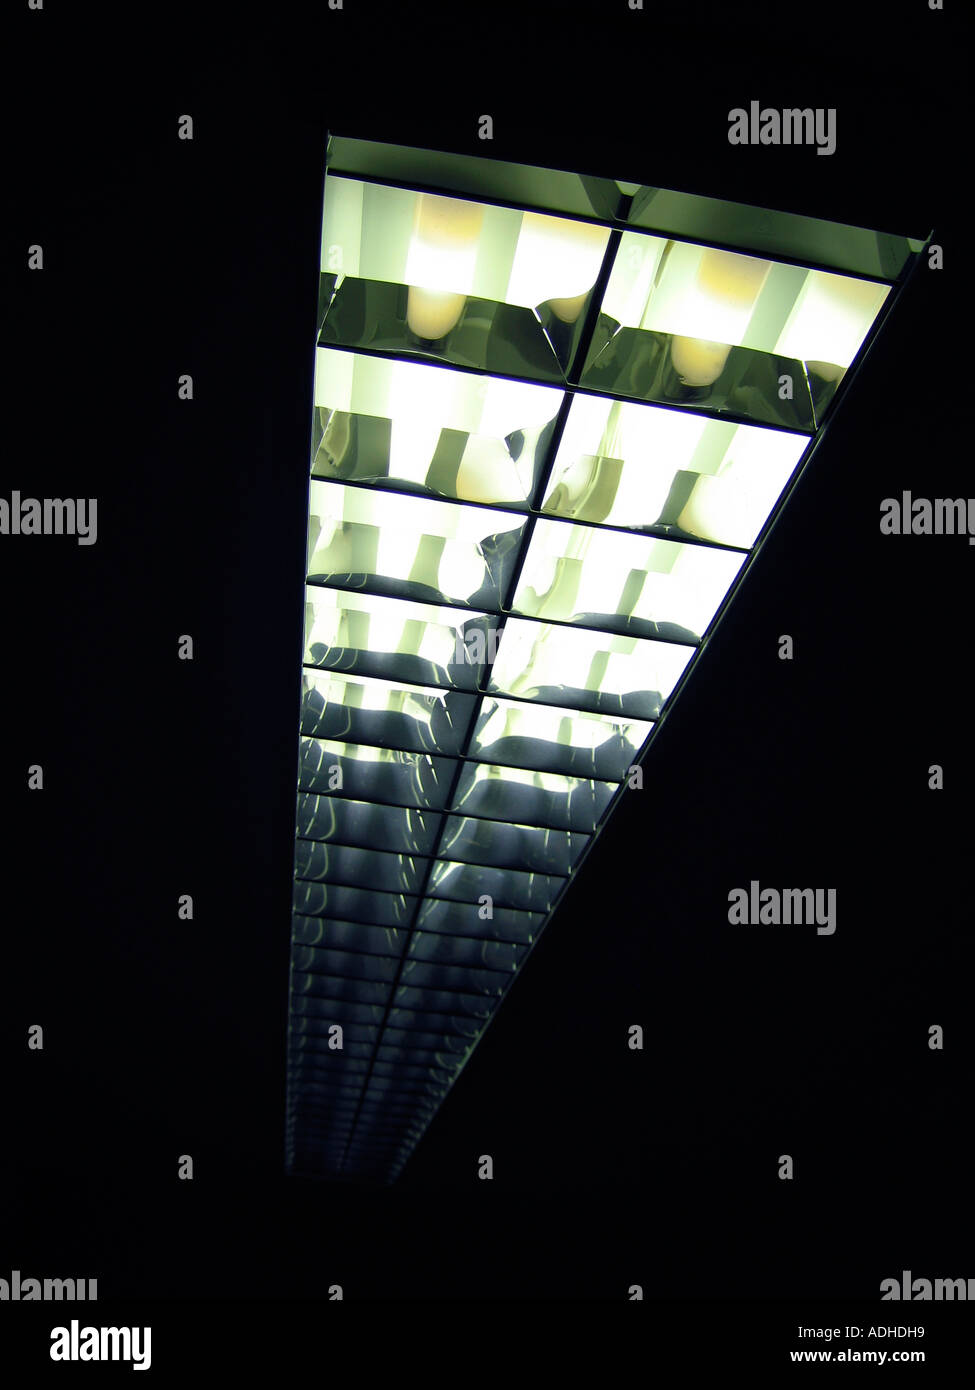 Surface Mounted Stock Photos Images Alamy 0800 Handyman Changing A Light Fitting Wiring Ceiling Fluorescent Image